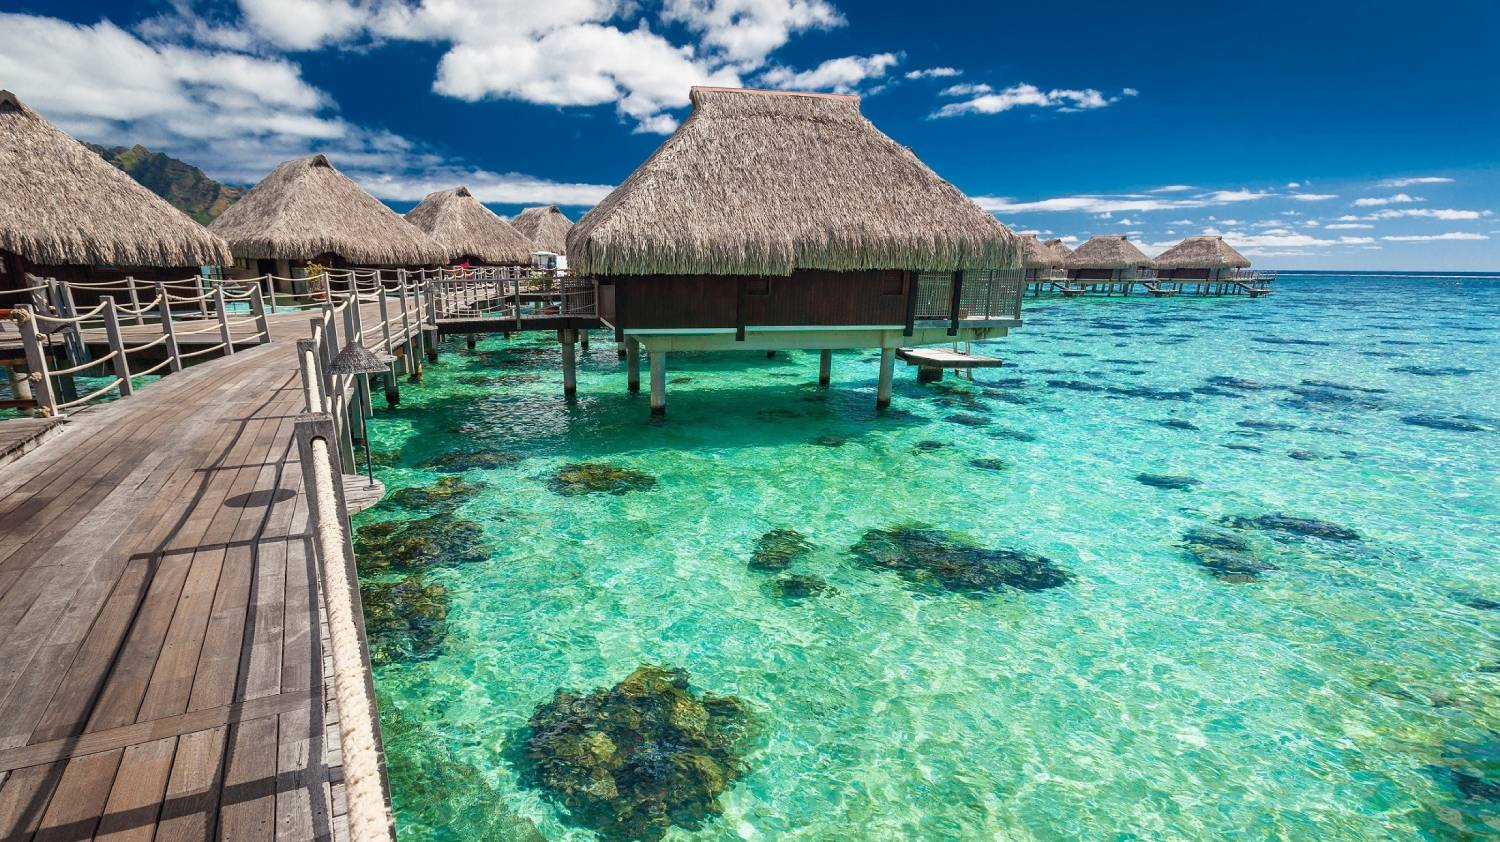 Moorea - The Best Places To Visit In French Polynesia